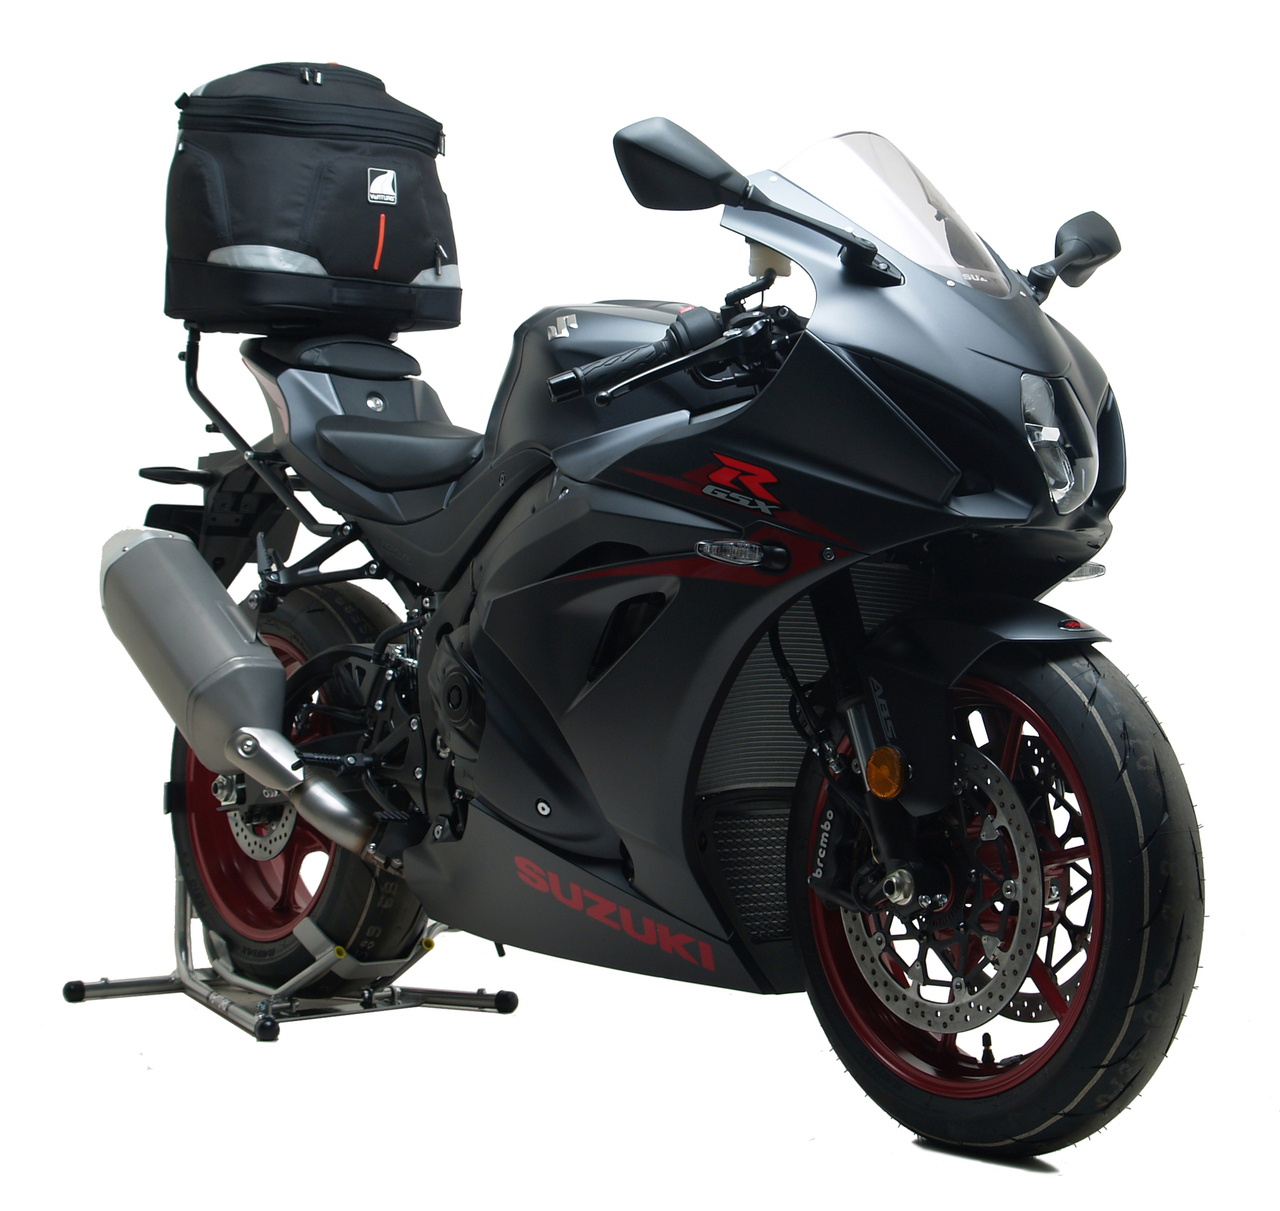 new product ventura for the new 2018 suzuki gsx r1000. Black Bedroom Furniture Sets. Home Design Ideas